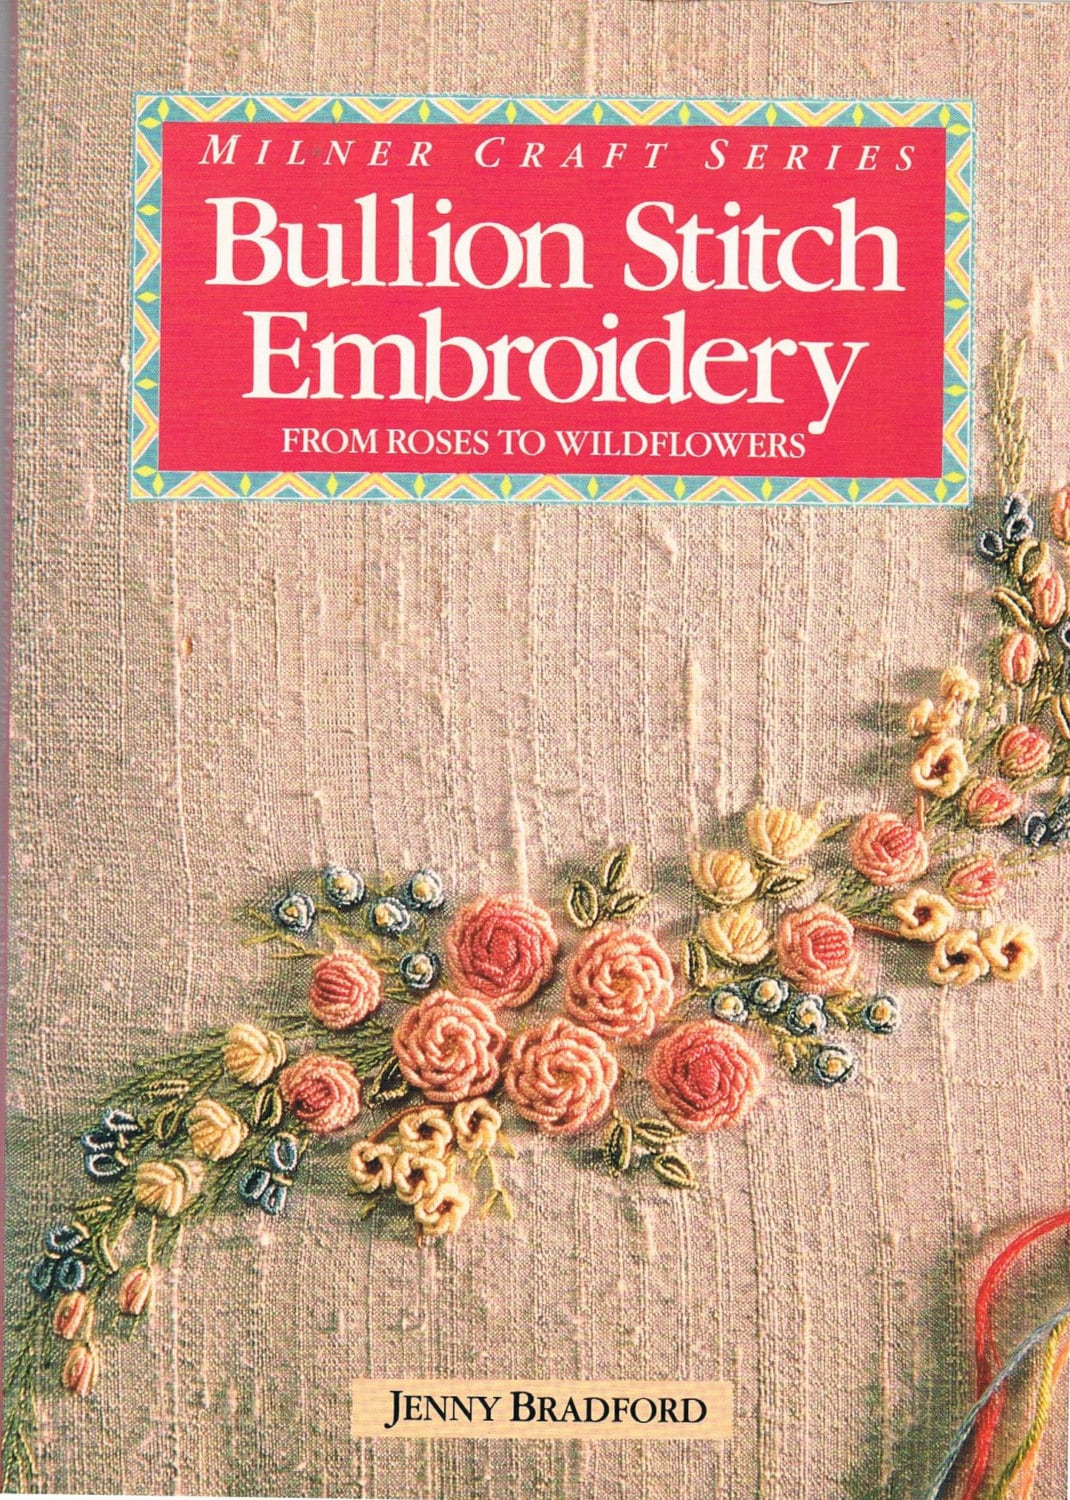 Bullion Stitch Embroidery from Roses to Wildflowers by Jenny